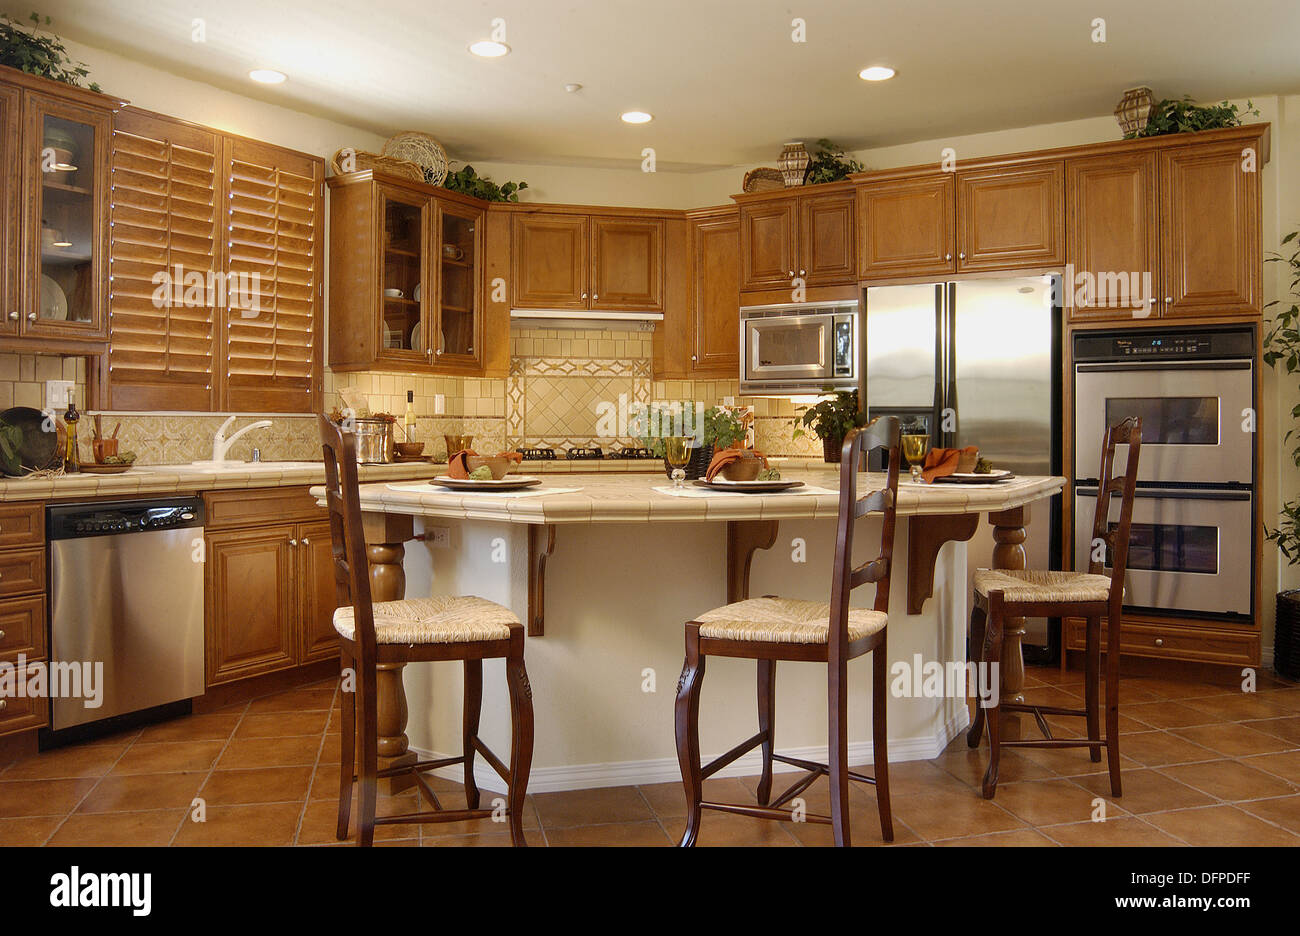 California home mediterranean style kitchen usa stock for California style kitchen